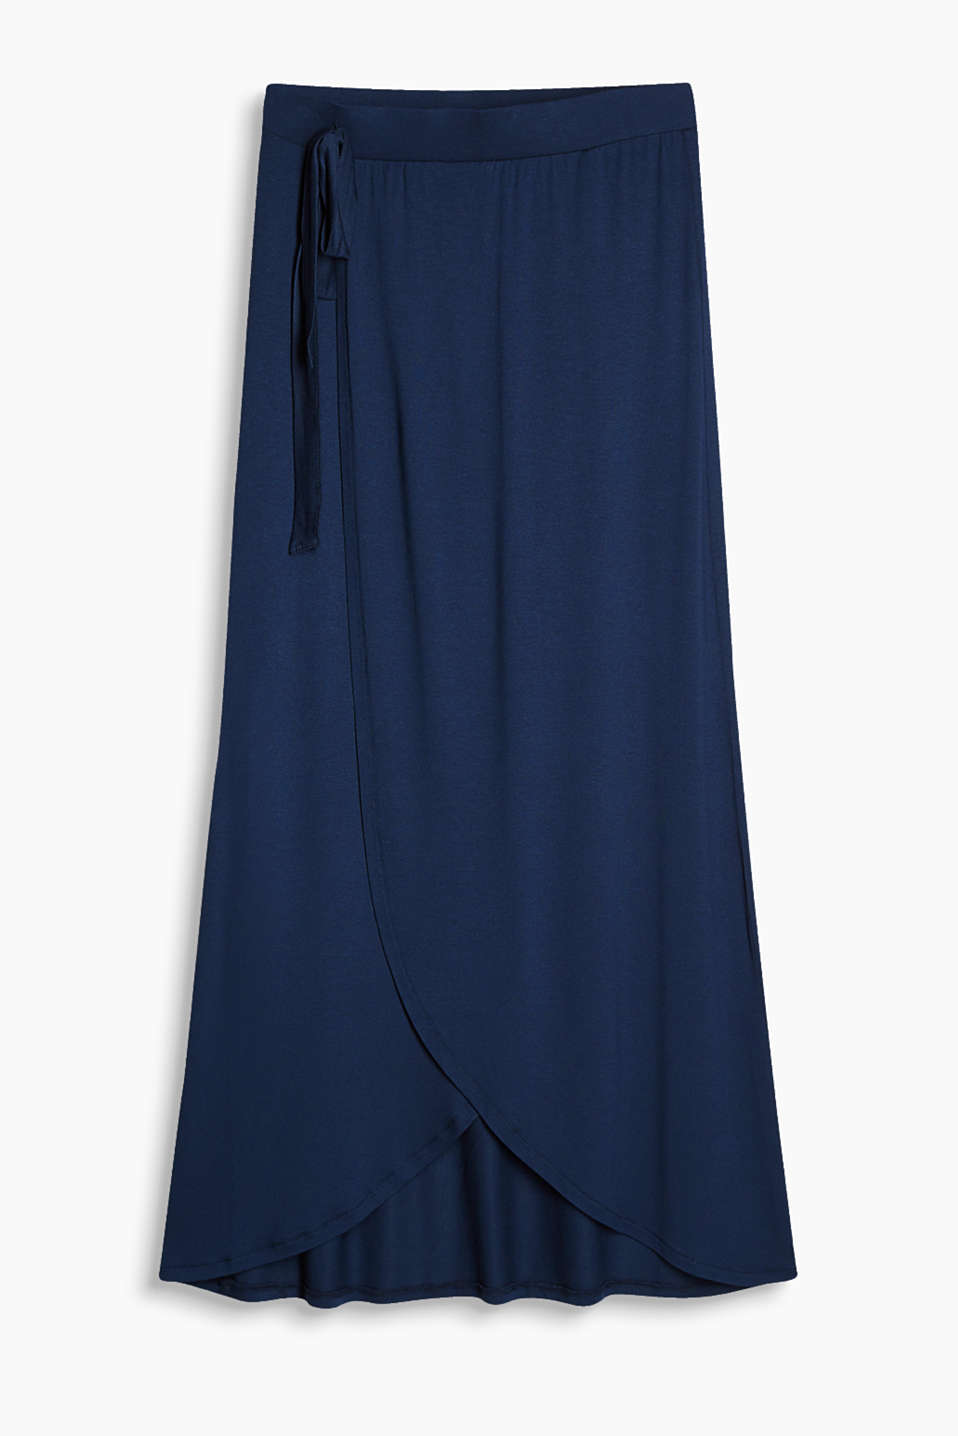 Flowing stretch jersey skirt with a fixed wrap-over effect